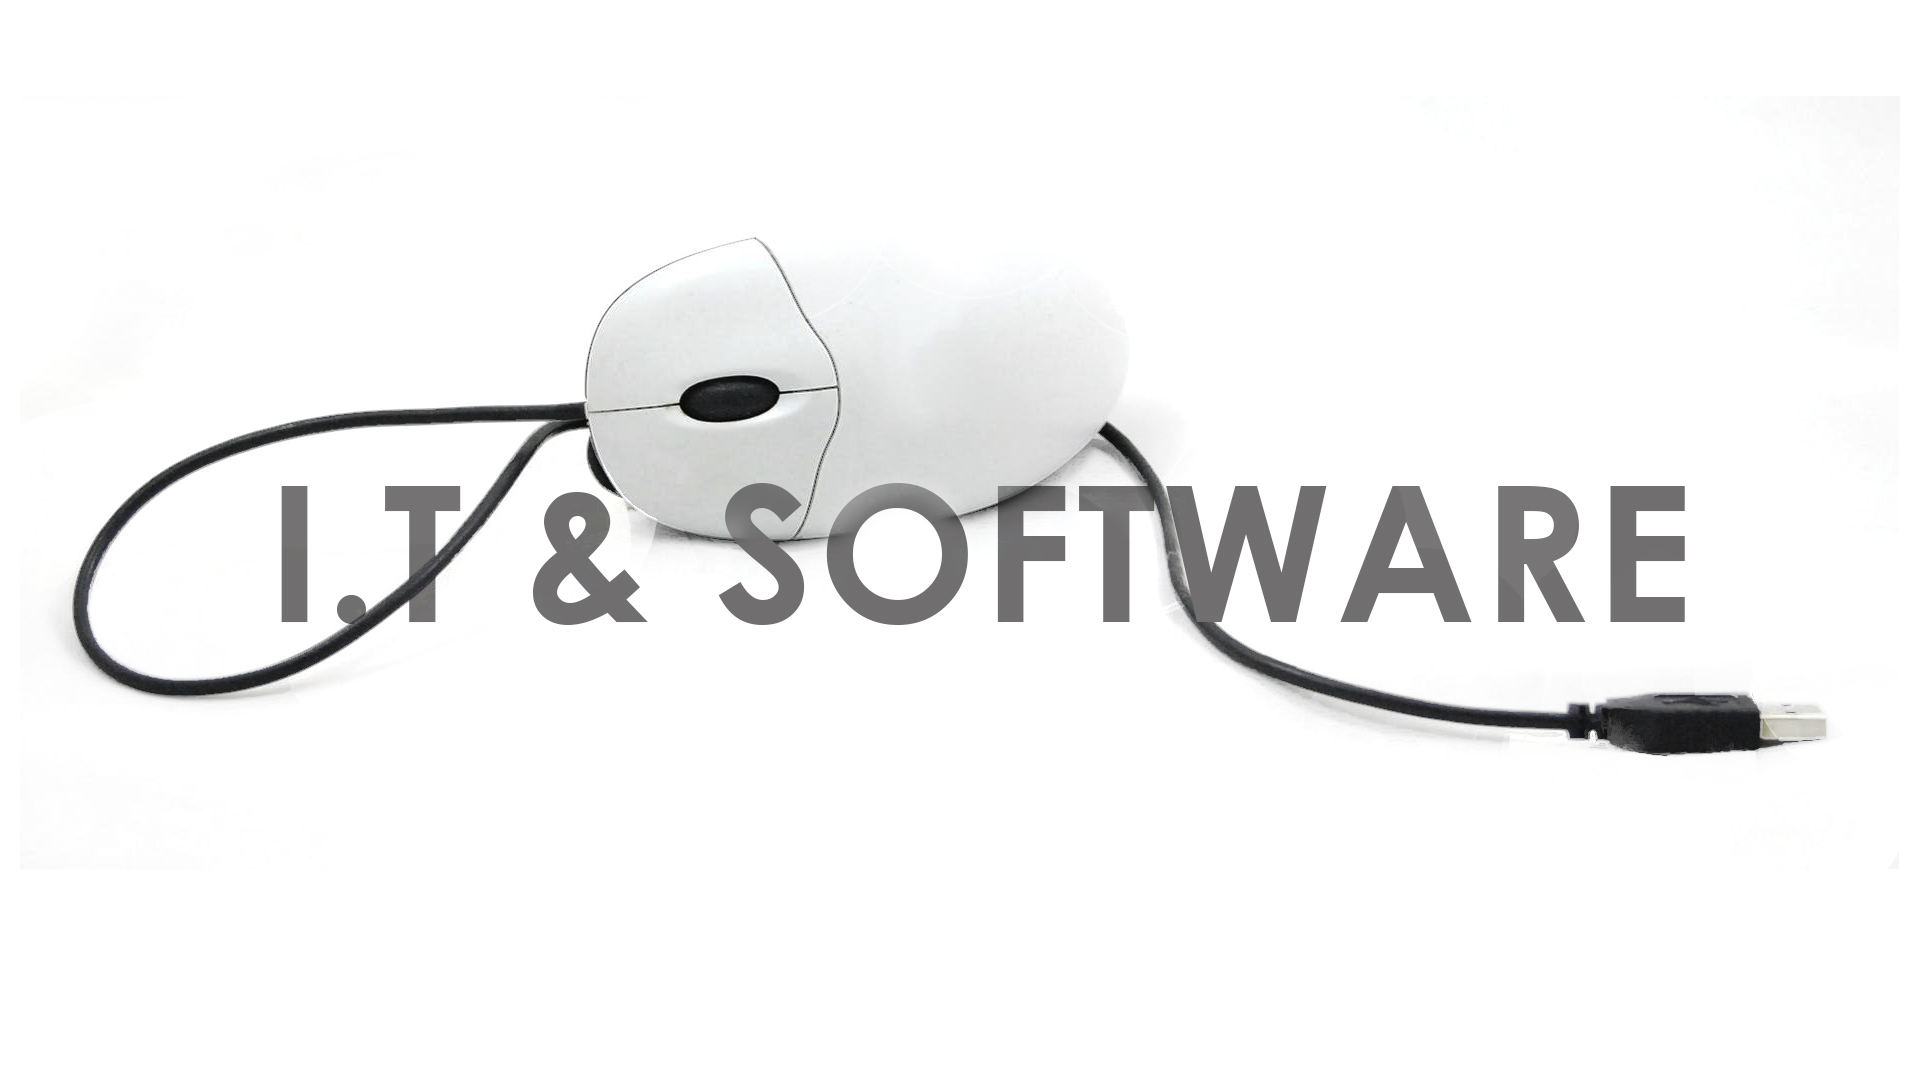 Cofficient are experts in ERP for IT & Software development industries